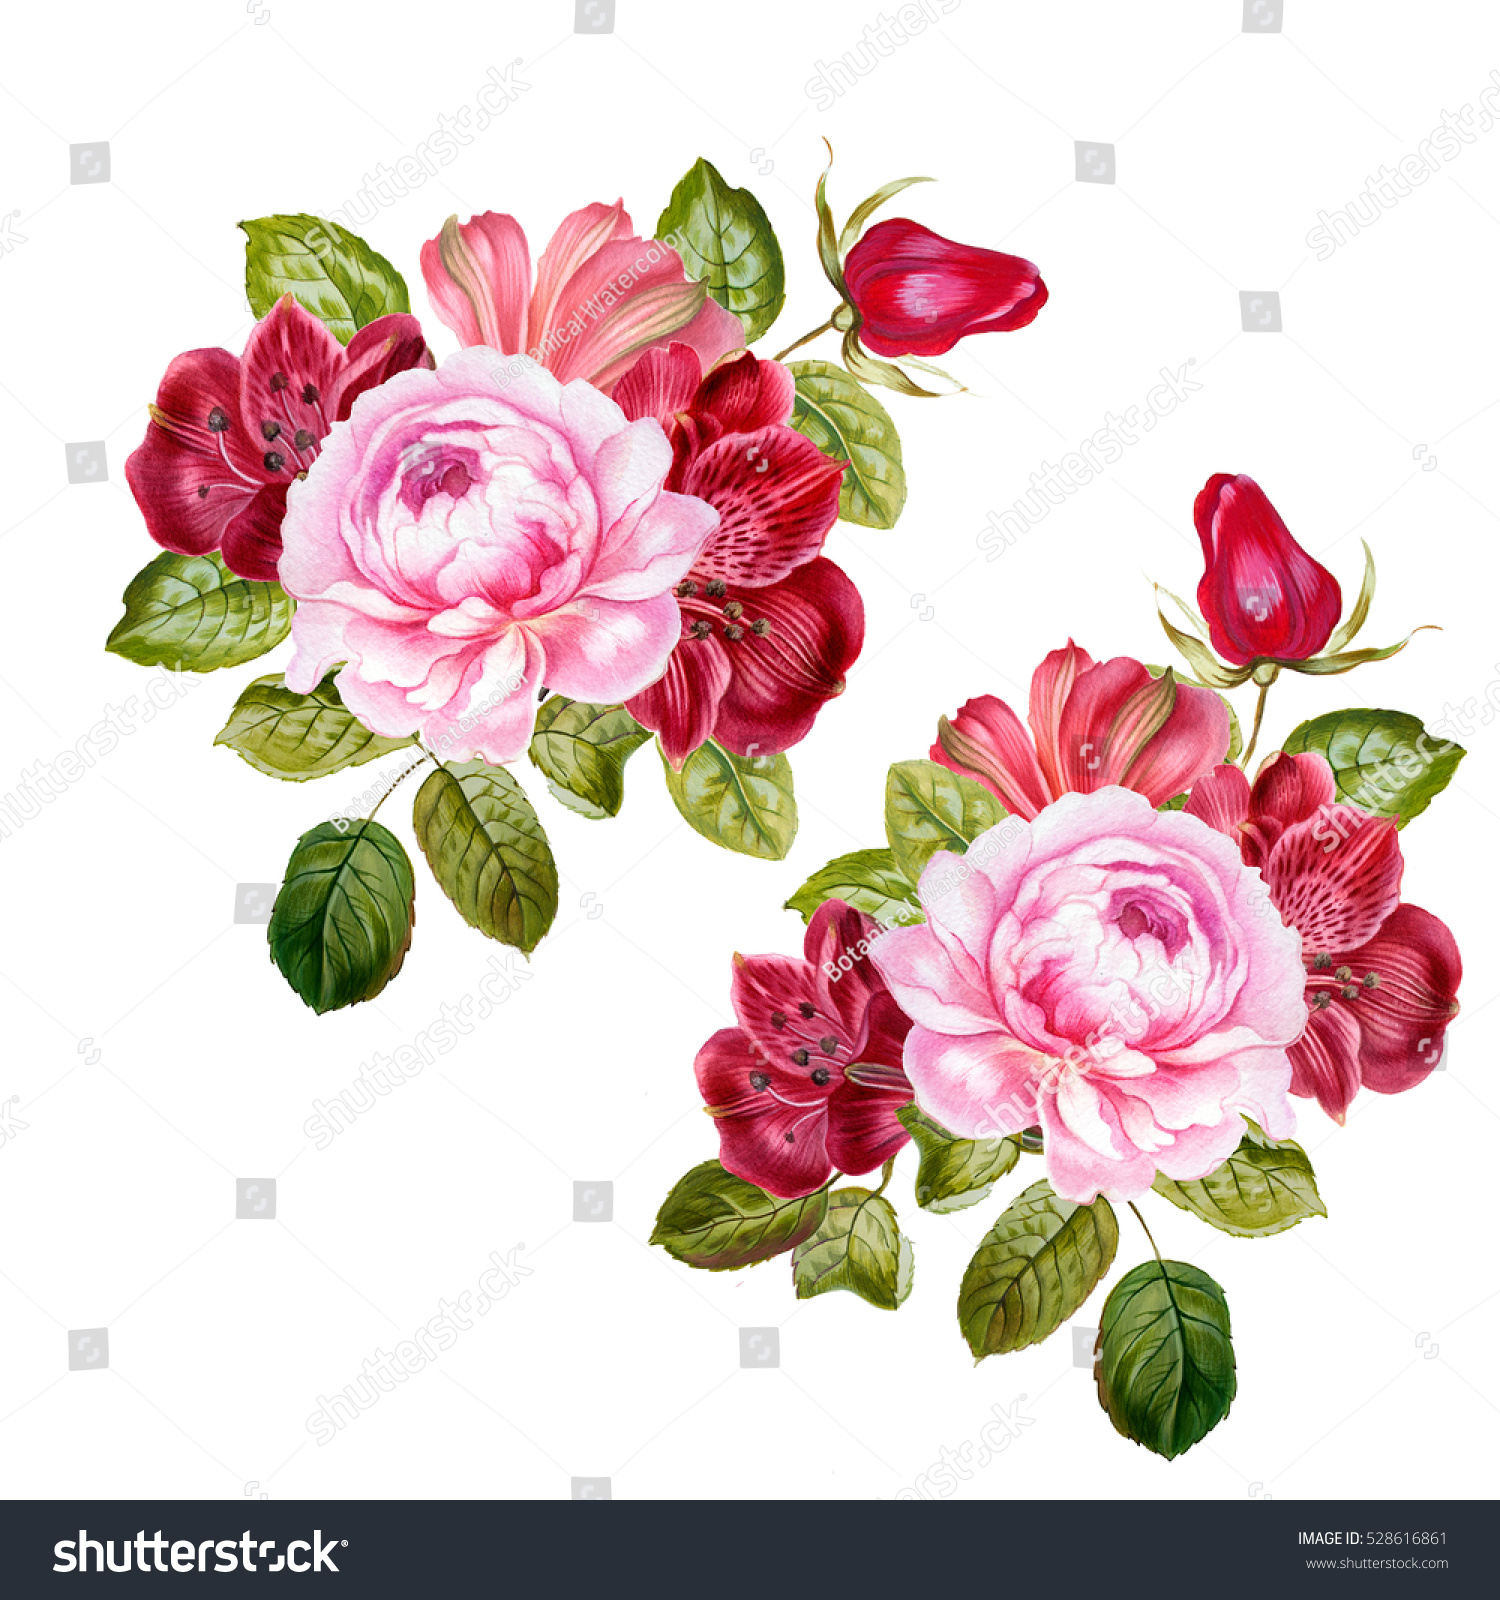 Pink Flowers Bouquets Illustration Watercolor Can Stock Illustration ...